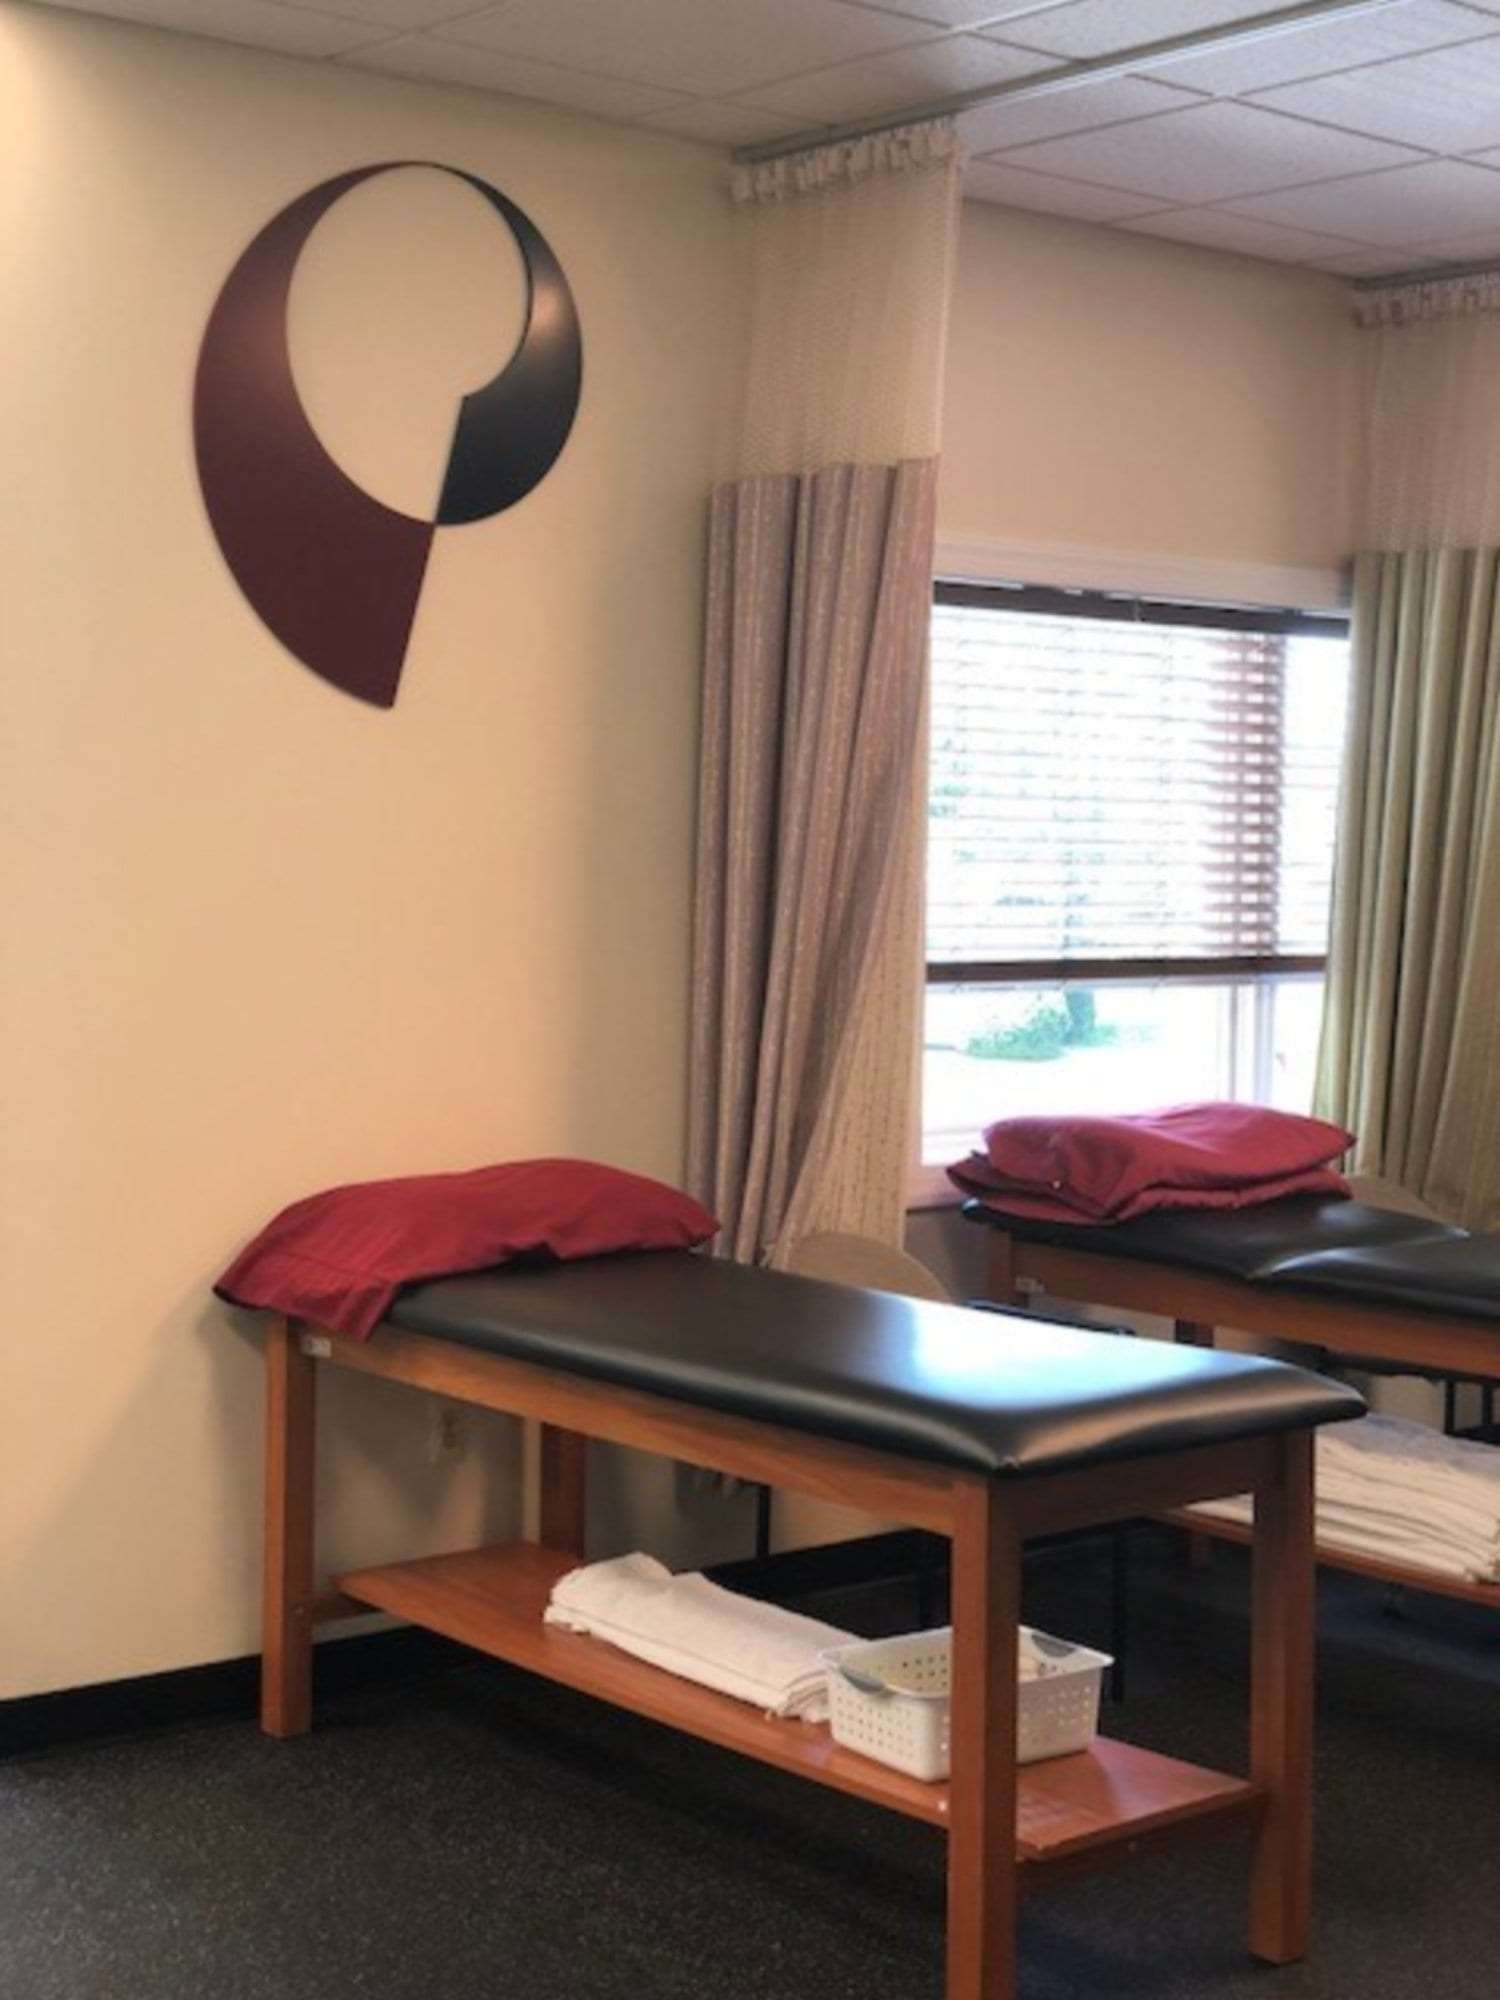 An image of the interior of our physical therapy clinic in Hazlet, New Jersey.